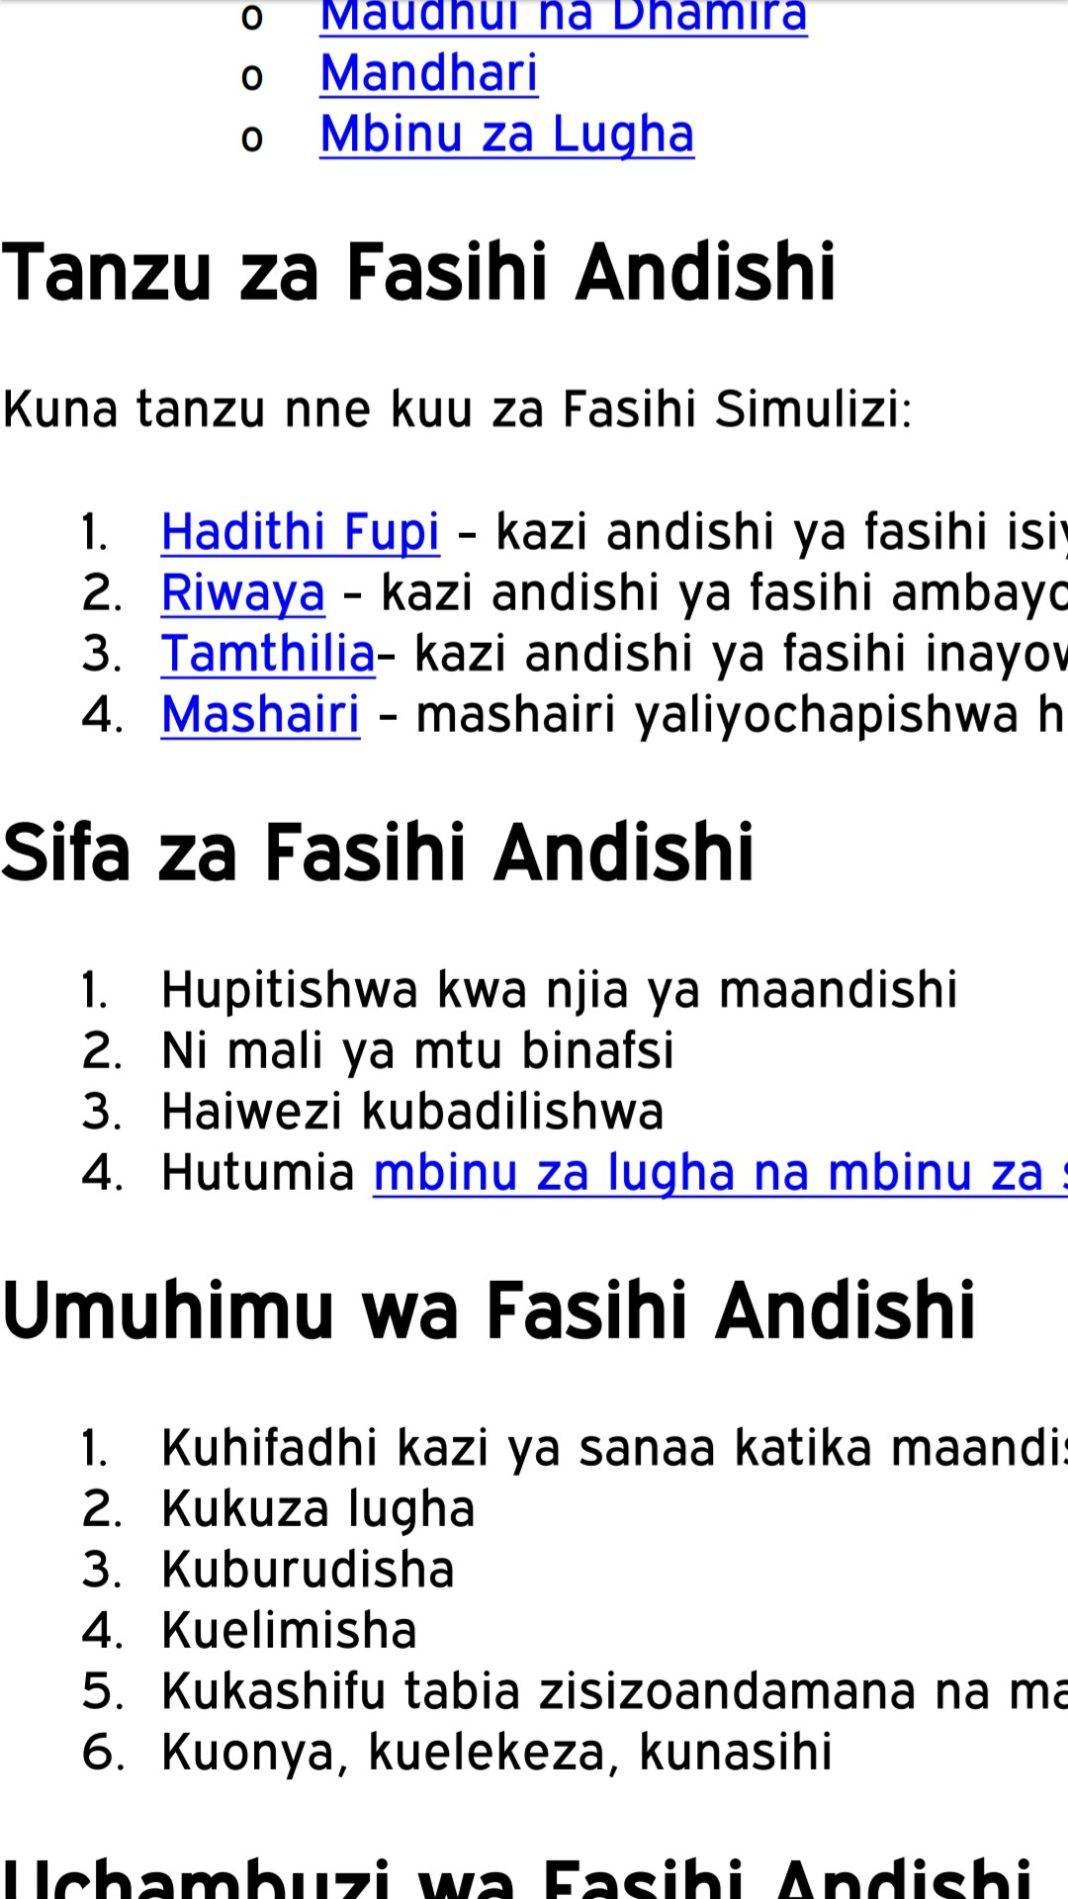 Free Kiswahili notes, schemes, lesson plans, Setbooks' guides, Fasihi notes, KCSE Past Papers, Termly Examinations, revision materials and marking schemes.